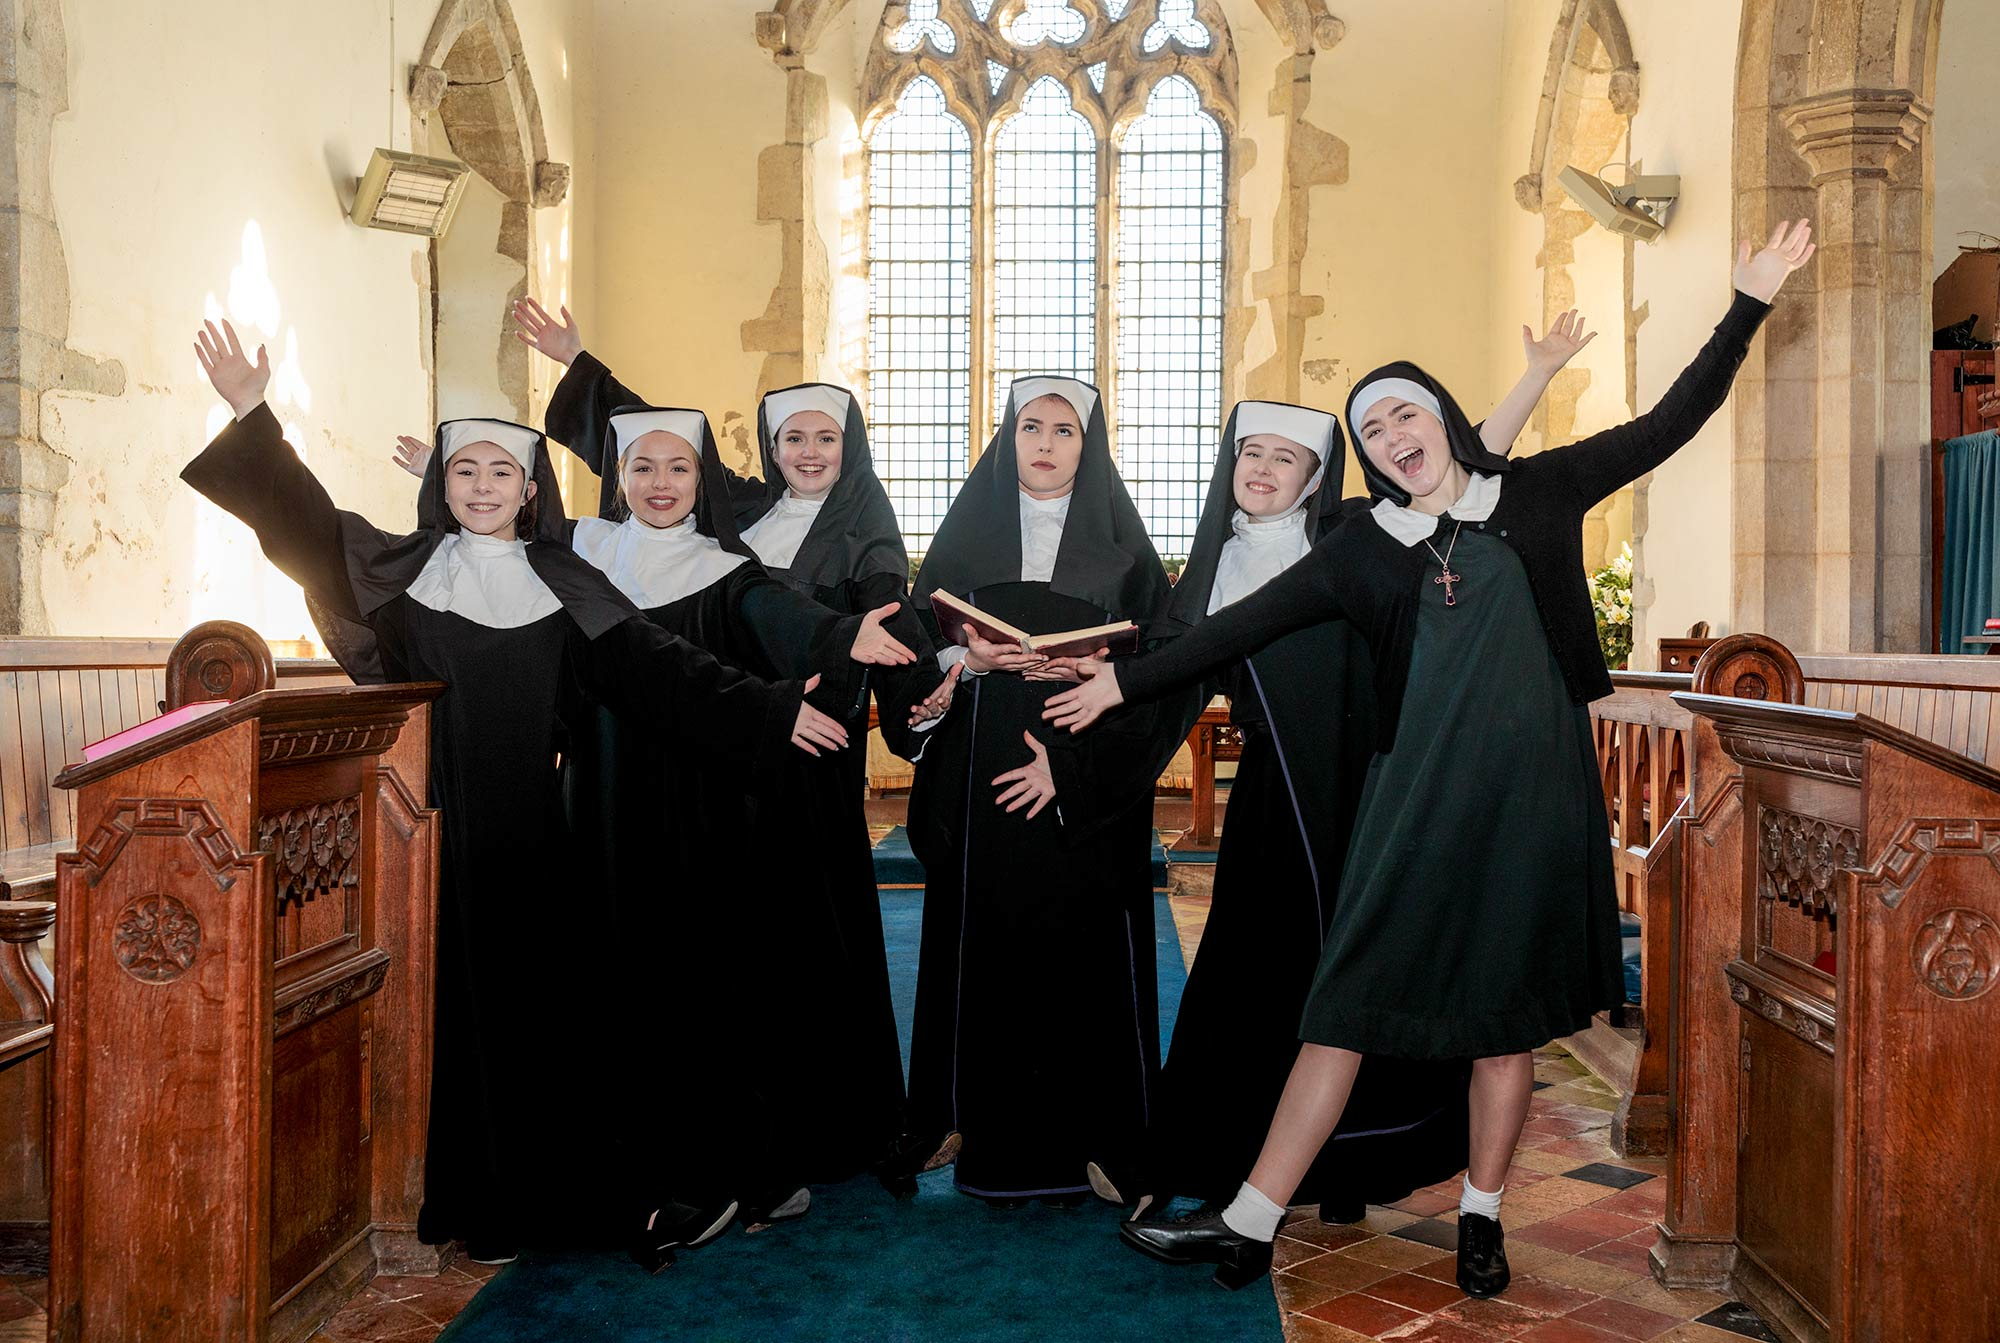 Sister Act in Spaldwick Church